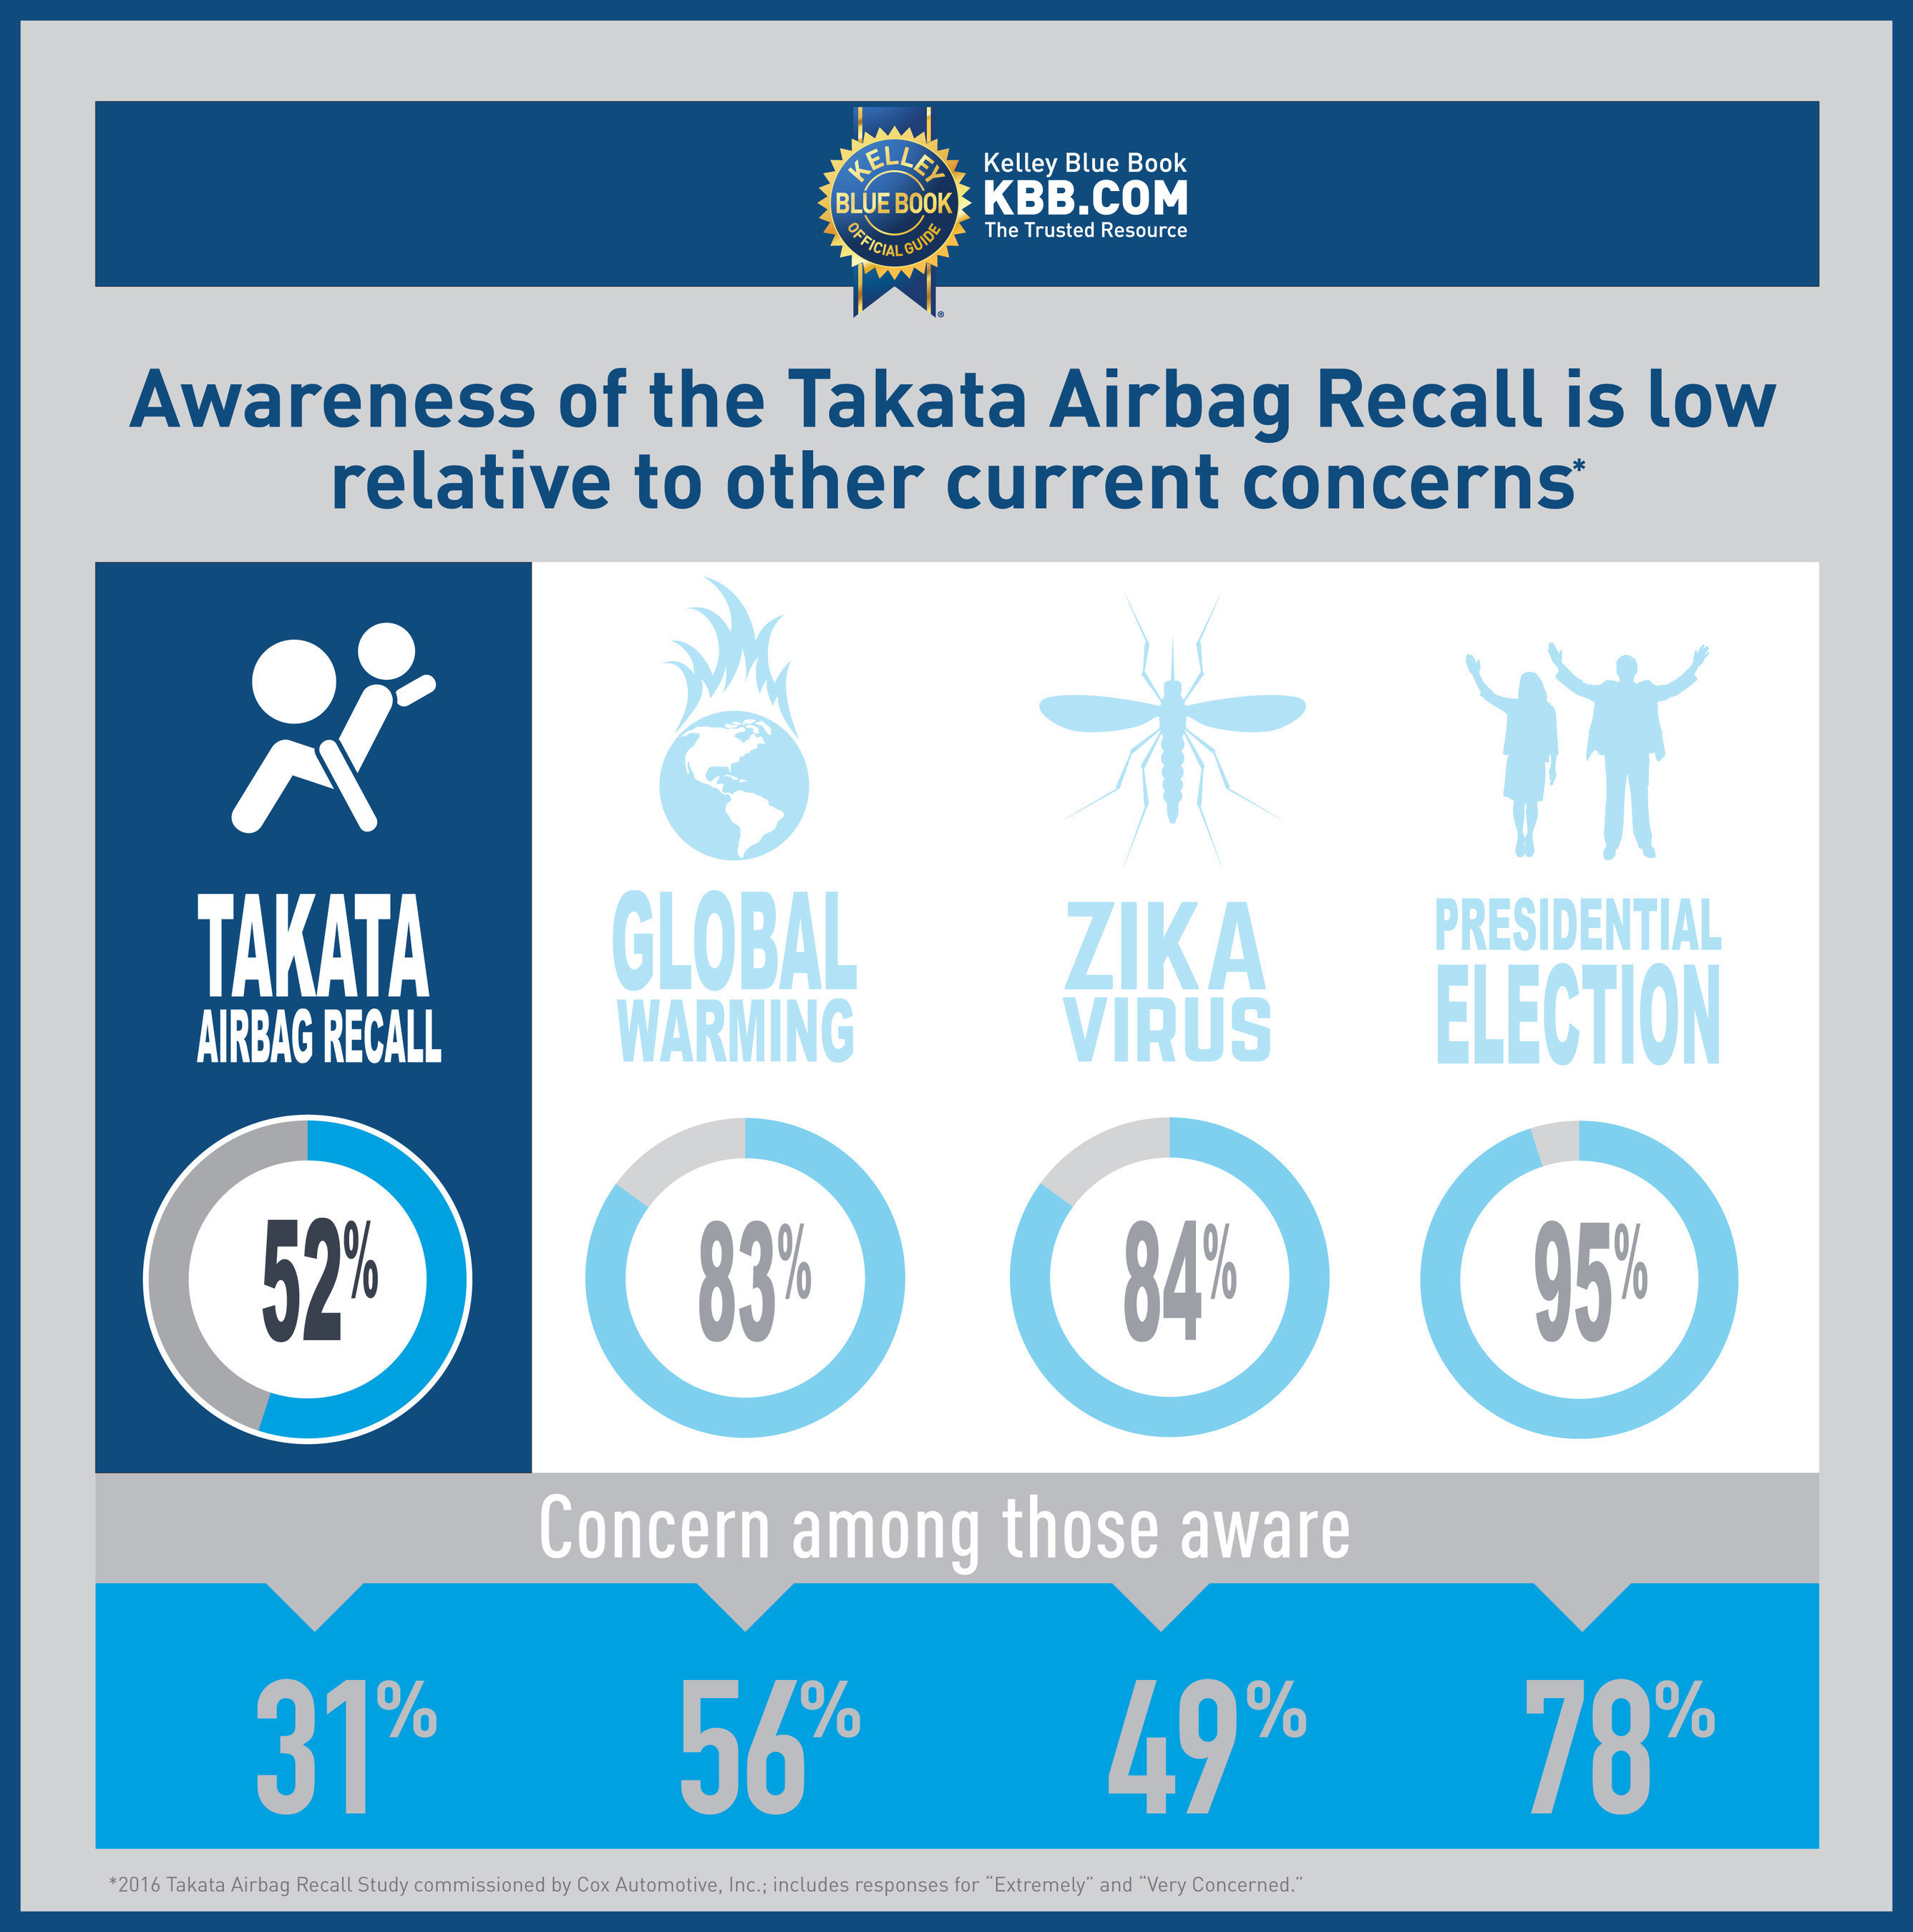 According to an all-new study, the Takata airbag recall has the lowest general awareness of current events and issues among all respondents. Furthermore, only a quarter of respondents believe the Takata airbag recall is very or extremely important, which also ranked lowest among these other national and international issues. Of those familiar with the Takata recall, only 31 percent describe themselves as very or extremely concerned about the Takata recall, falling behind the Zika virus (49 percent), the...